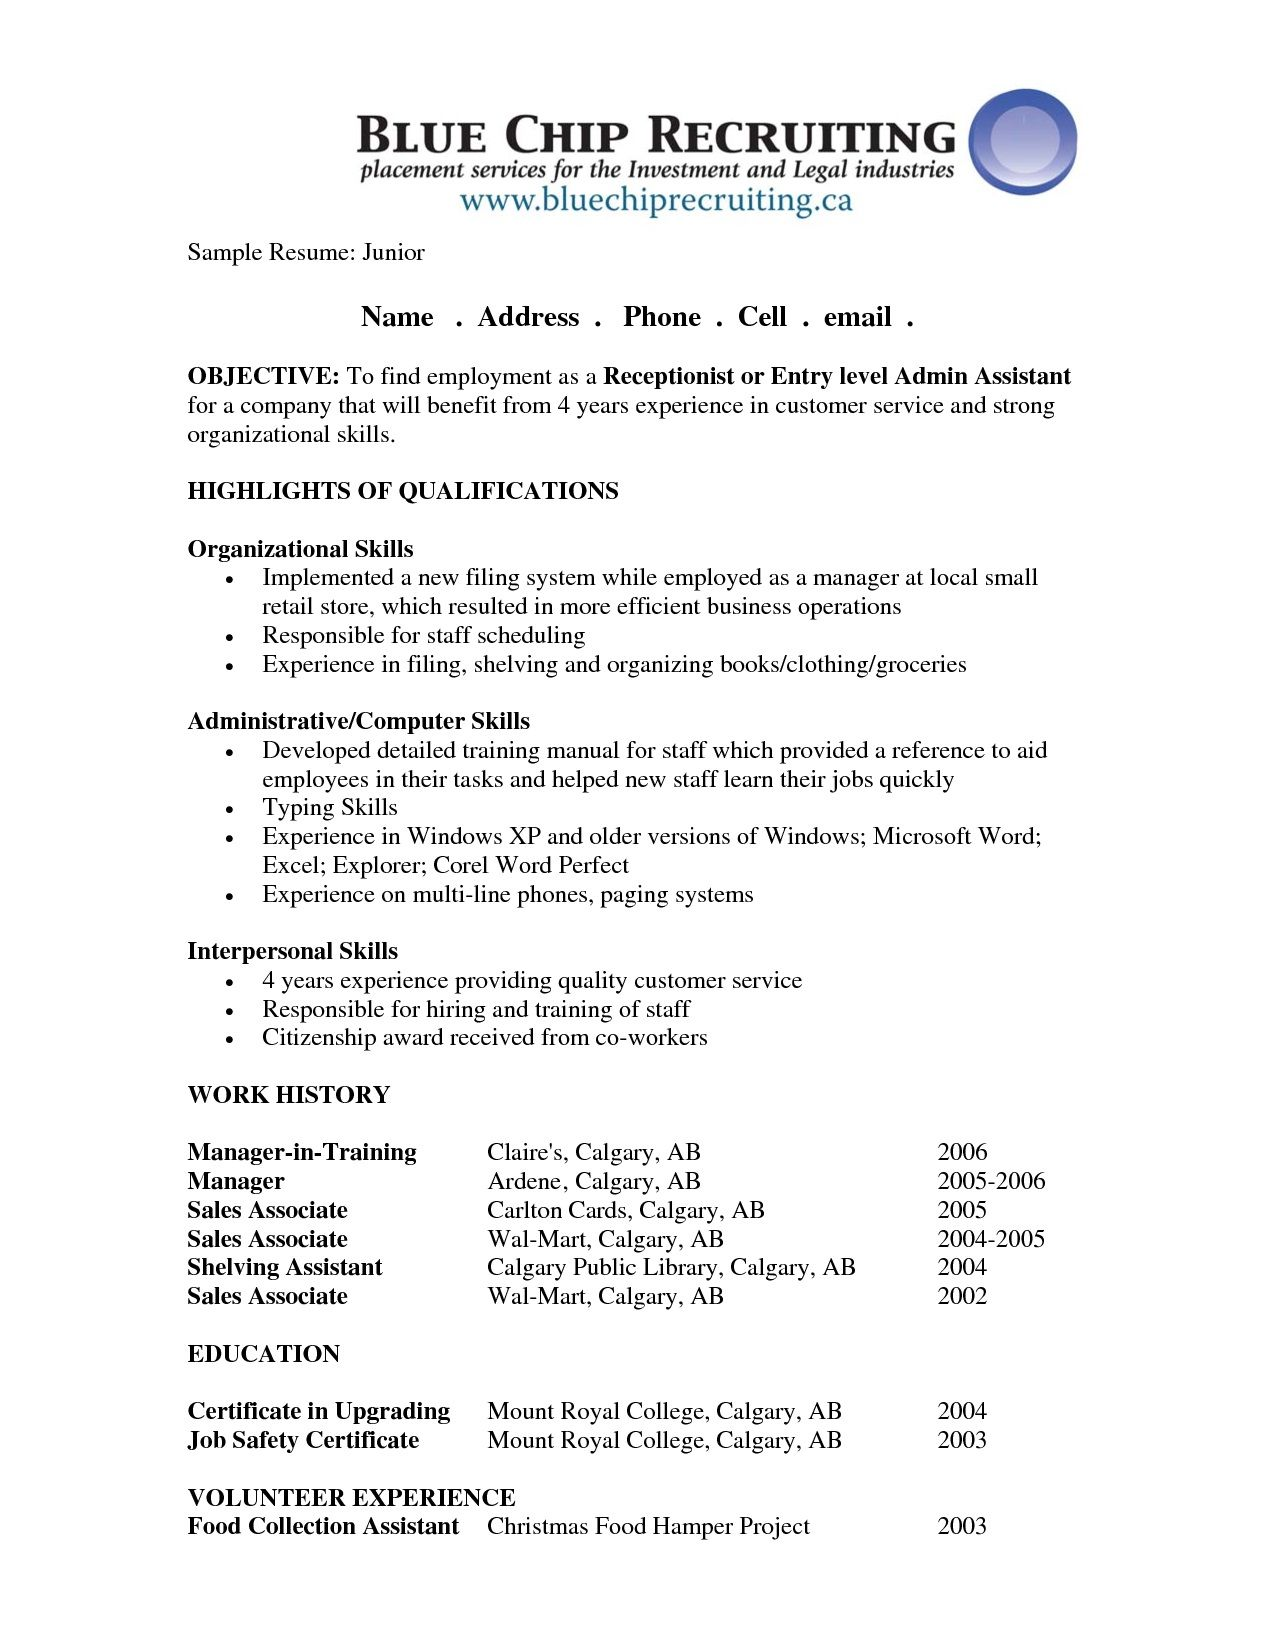 Receptionist Resume Objective Sample    Http://jobresumesample.com/453/receptionist Resume Objective Sample/